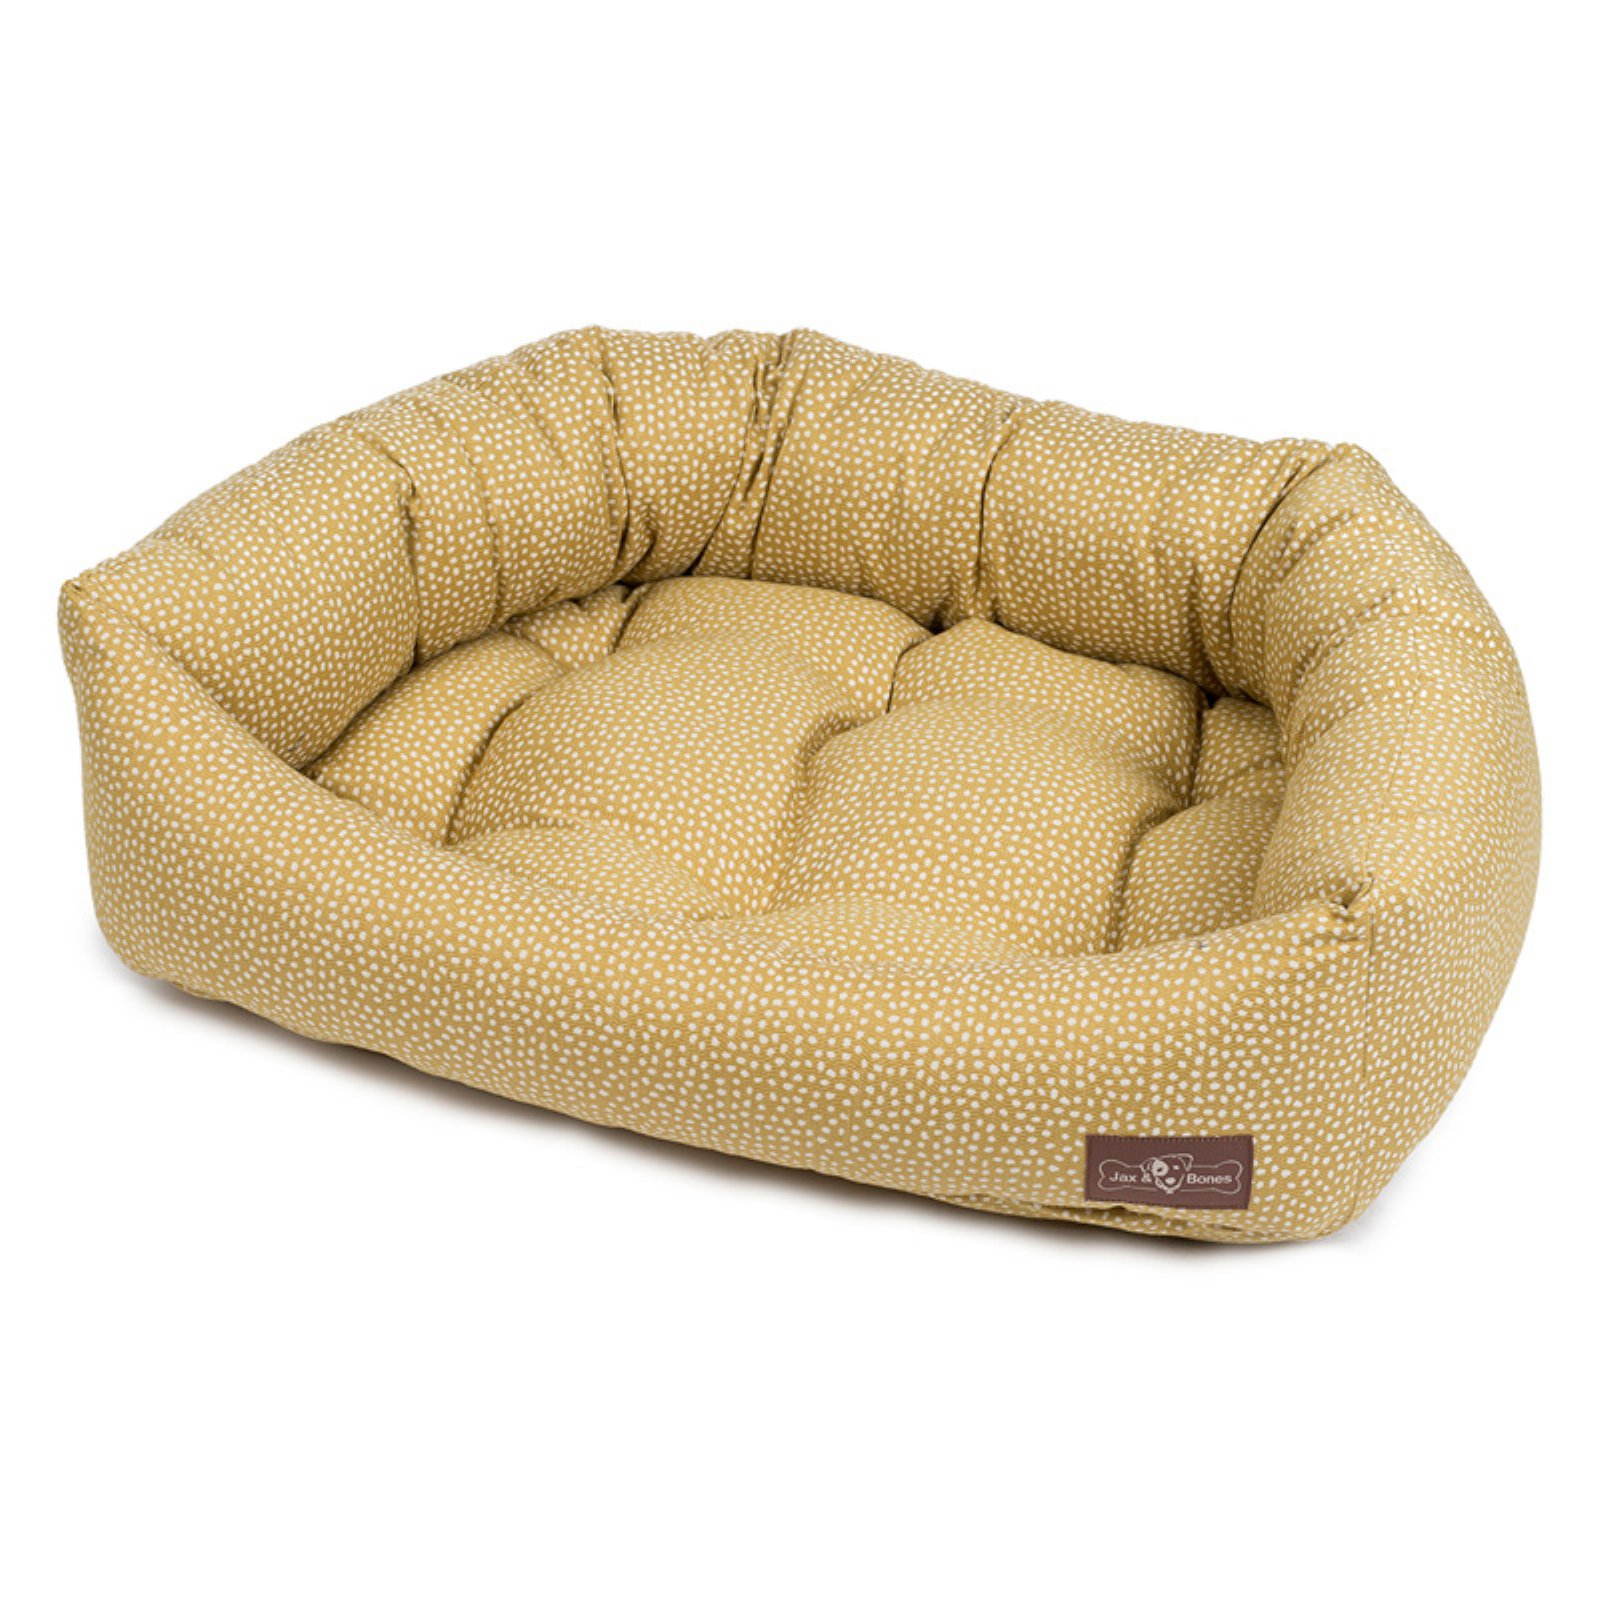 Jax & Bones Premium Fabric Cotton Napper Pet Bed Maize